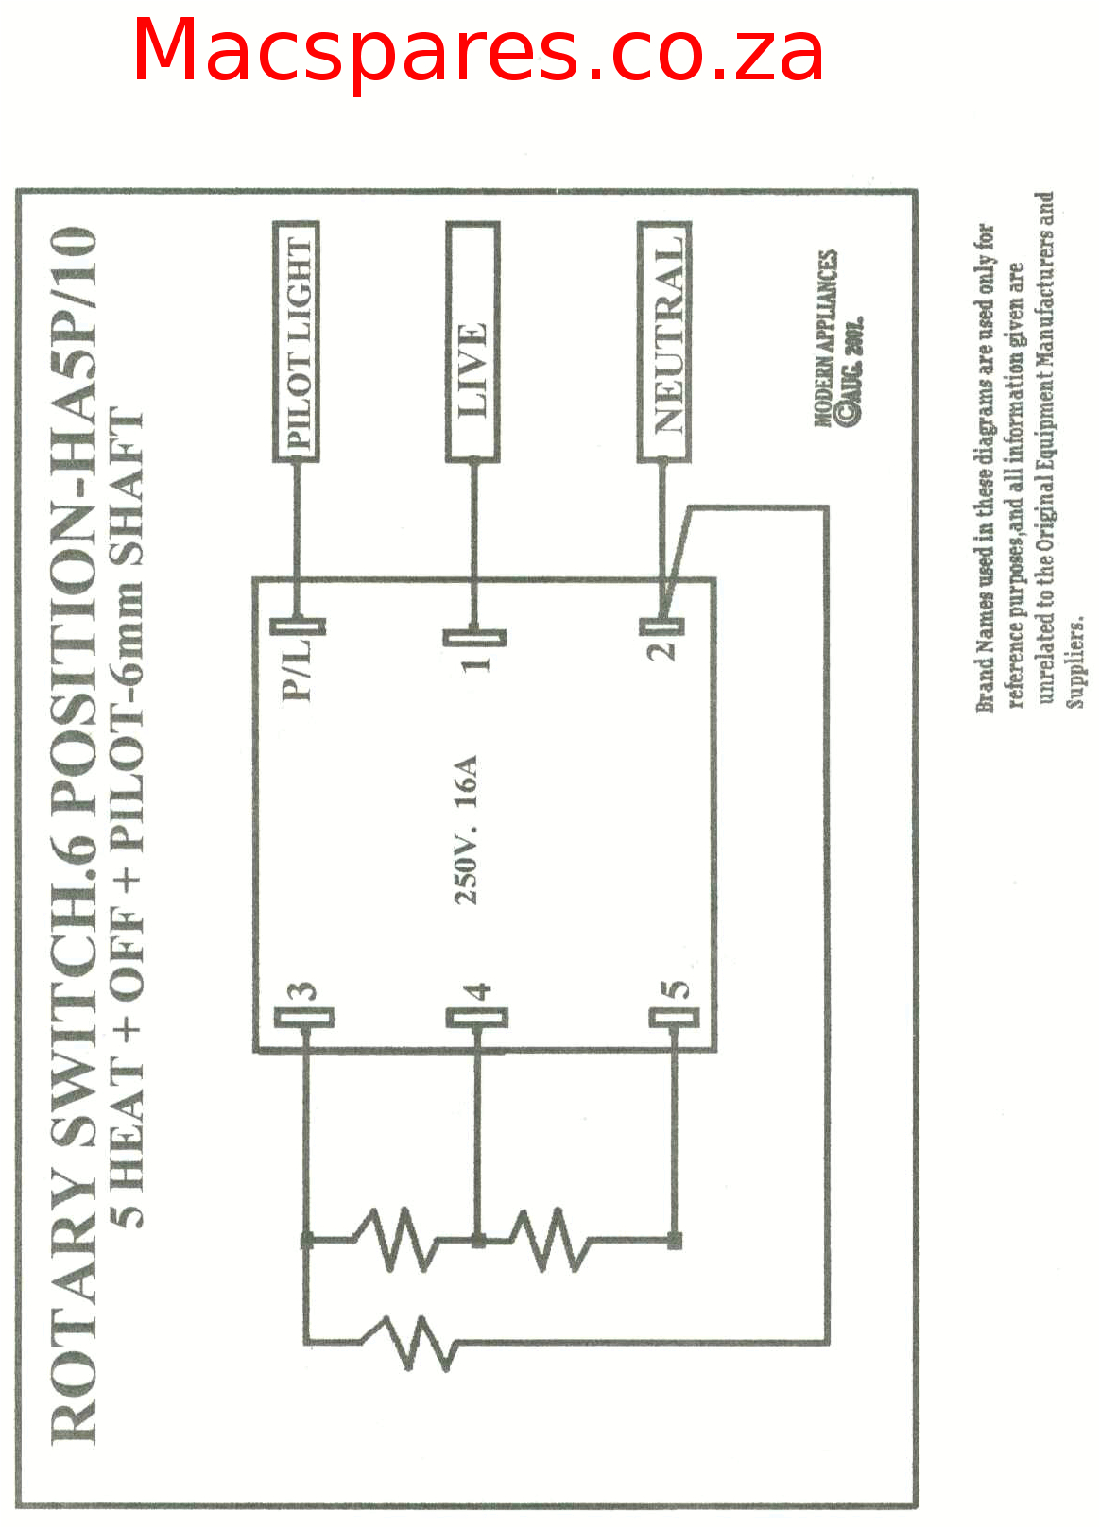 rotary switch 6 position ha gif